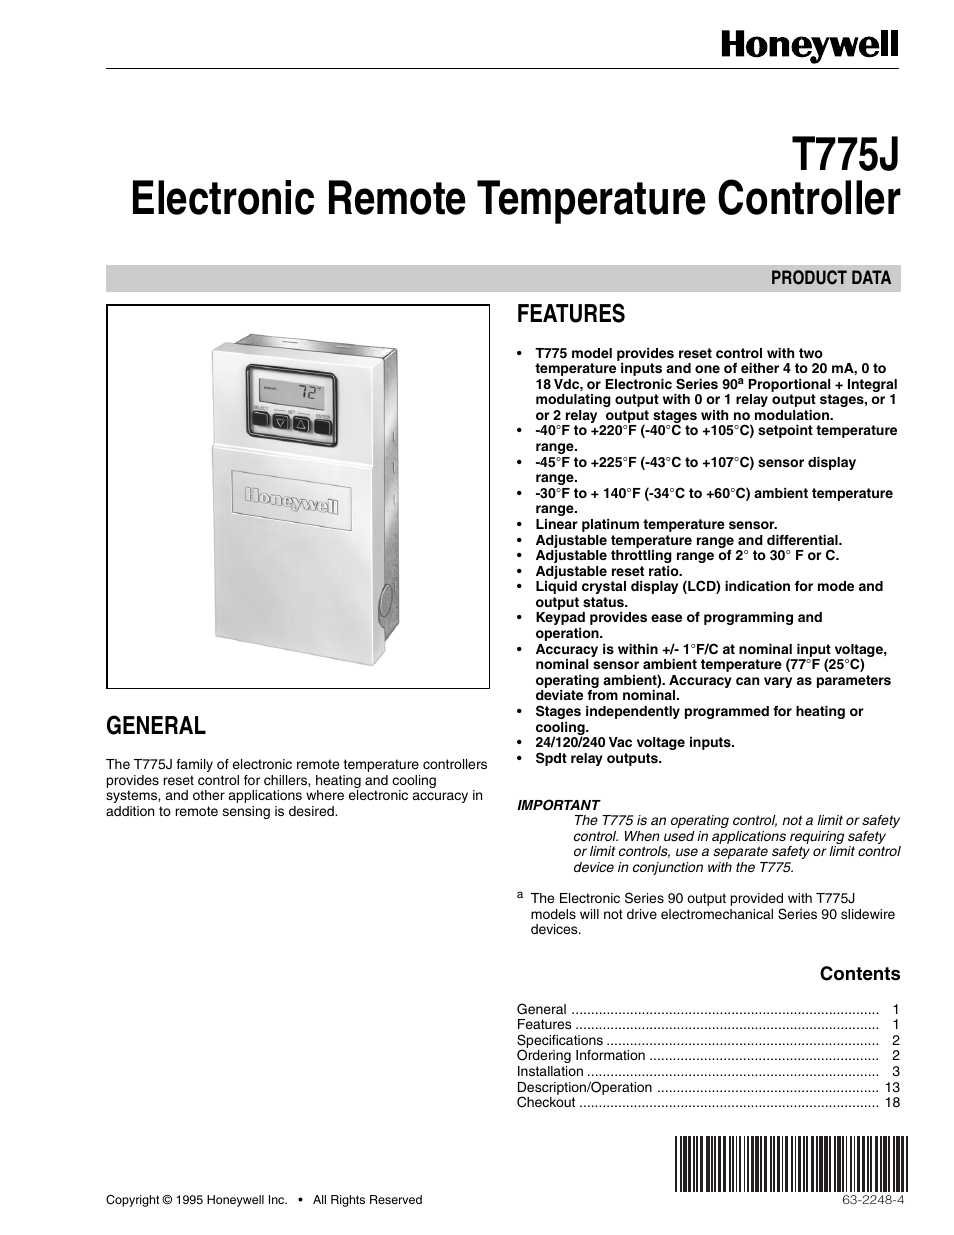 honeywell electronic remote temperature controller t775j user manual rh manualsdir com honeywell t775 series 2000 manual honeywell t775 programming manual